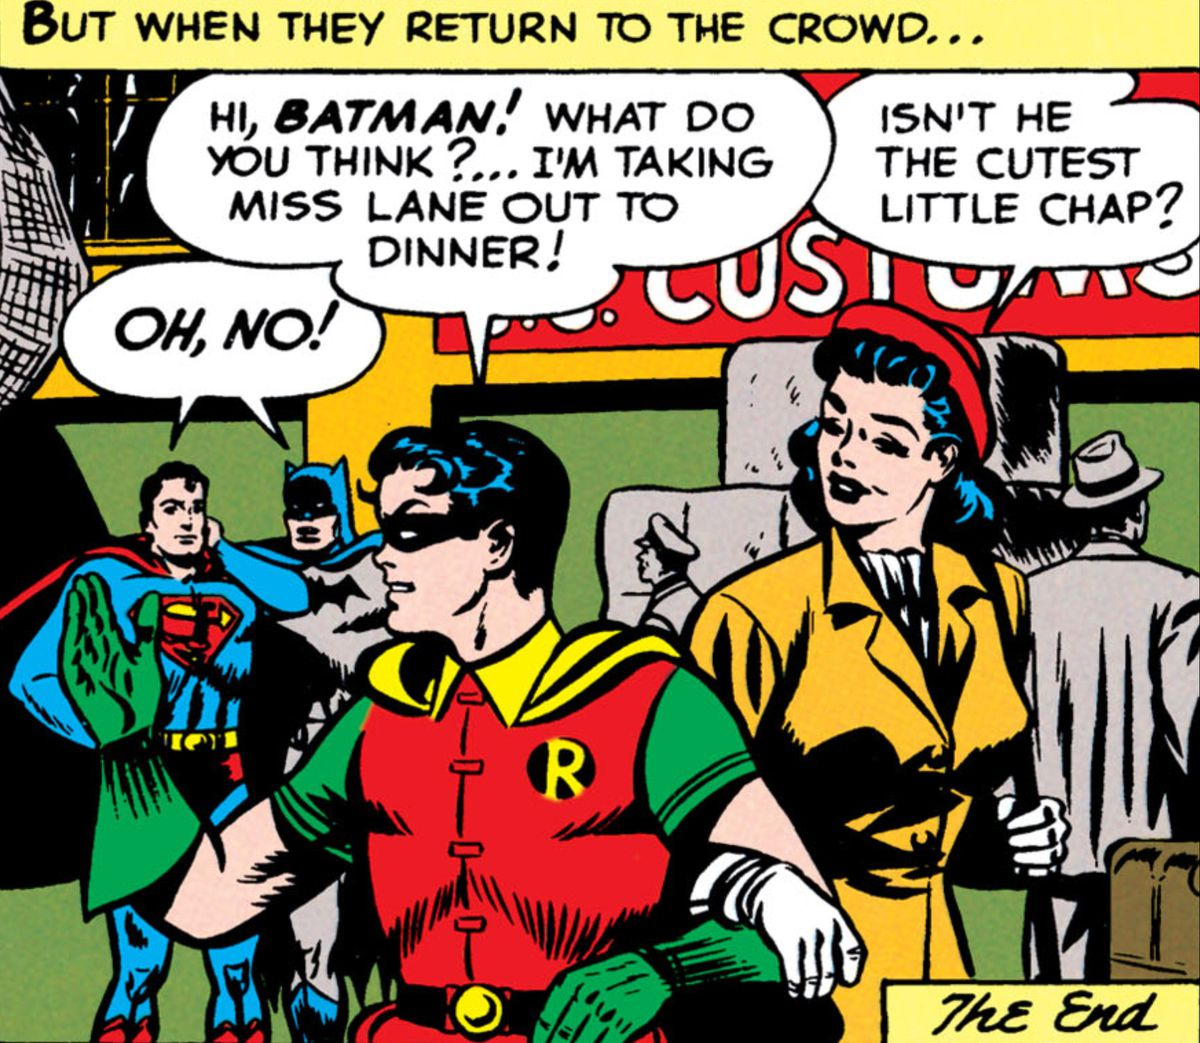 """""""Hi, Batman!"""" says Robin as he takes Lois by the arm, """"What do you think? I'm taking Miss Lane out to dinner!"""" """"Isn't he the cutest little chap?"""" says Lois, as Batman and Superman exclaim """"OH, NO!"""" in Superman #76, DC Comics (1952)."""